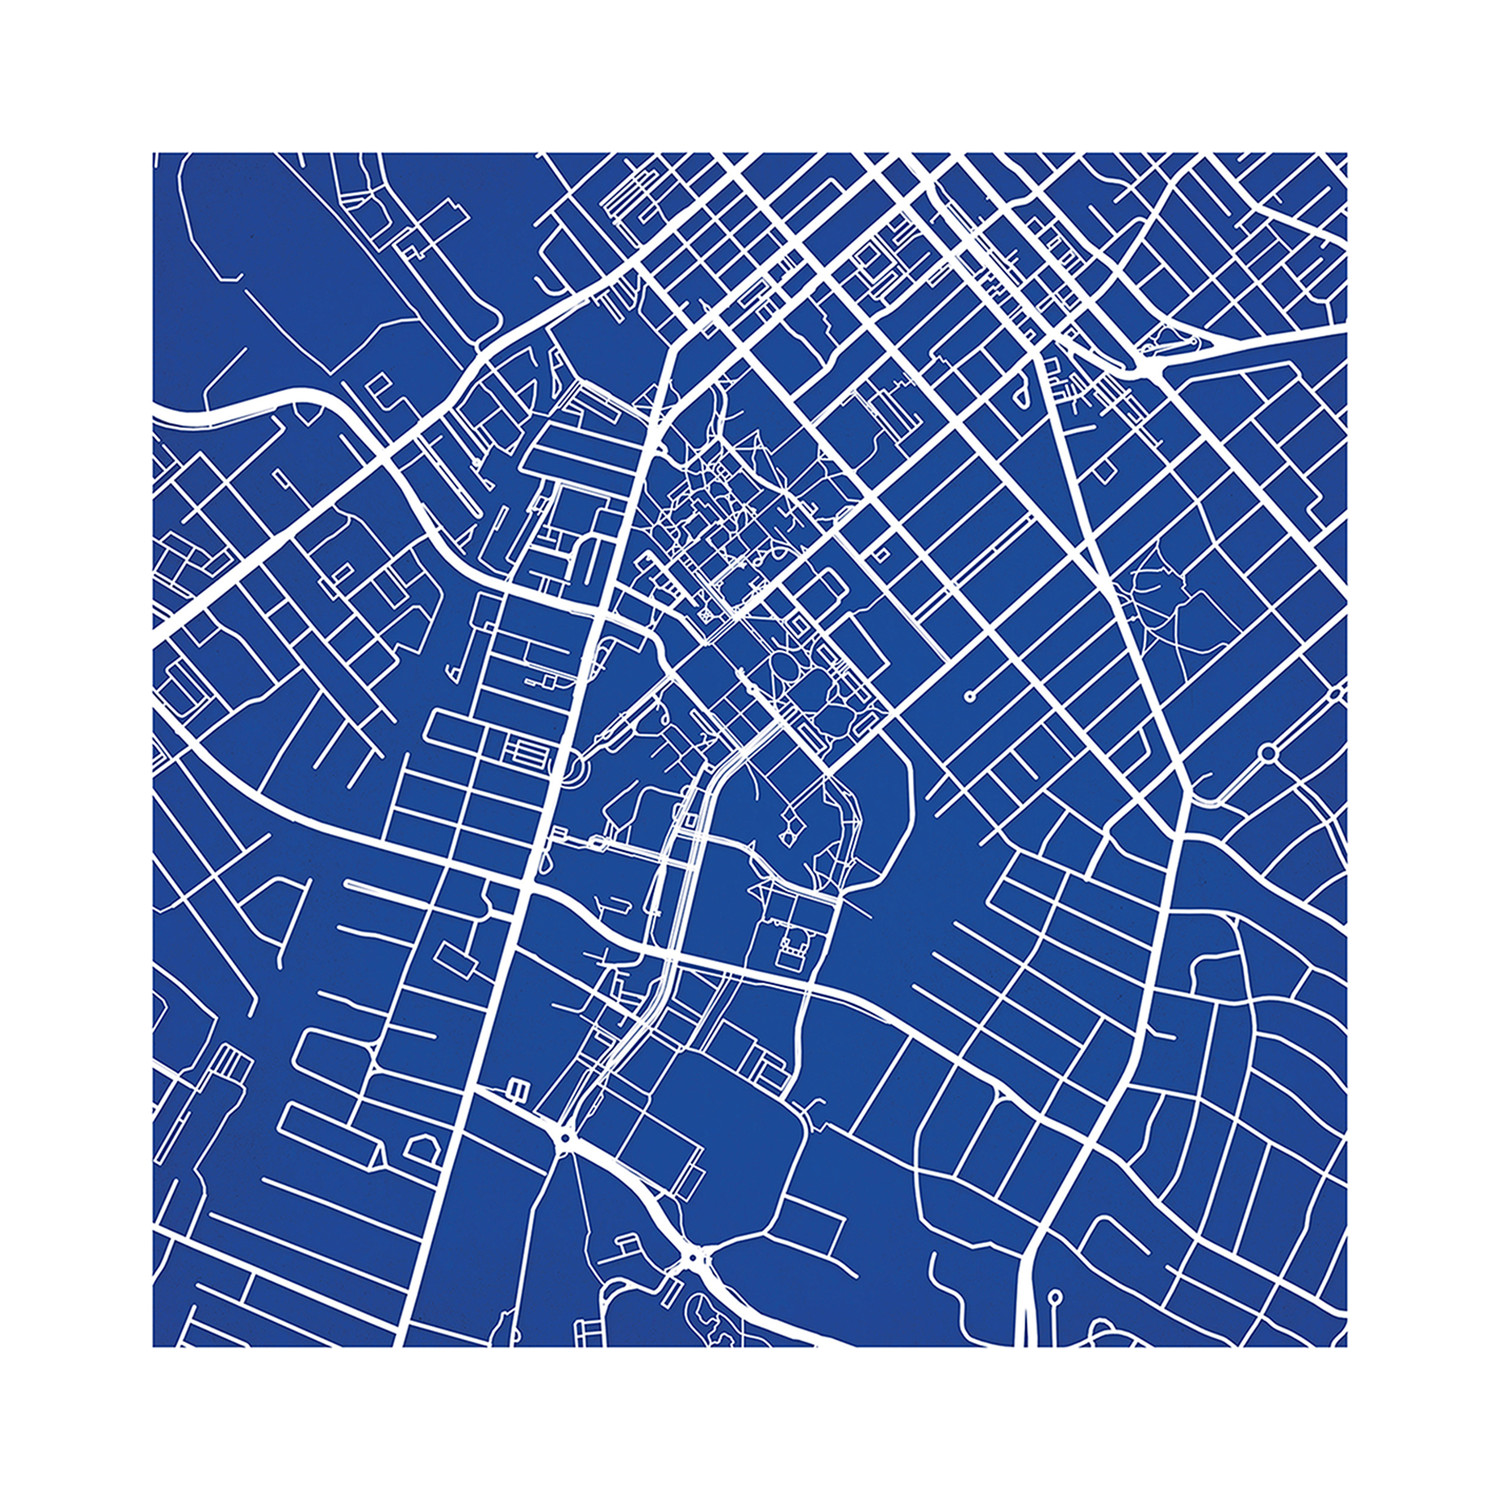 University of Kentucky - College Campus Maps - Touch of Modern